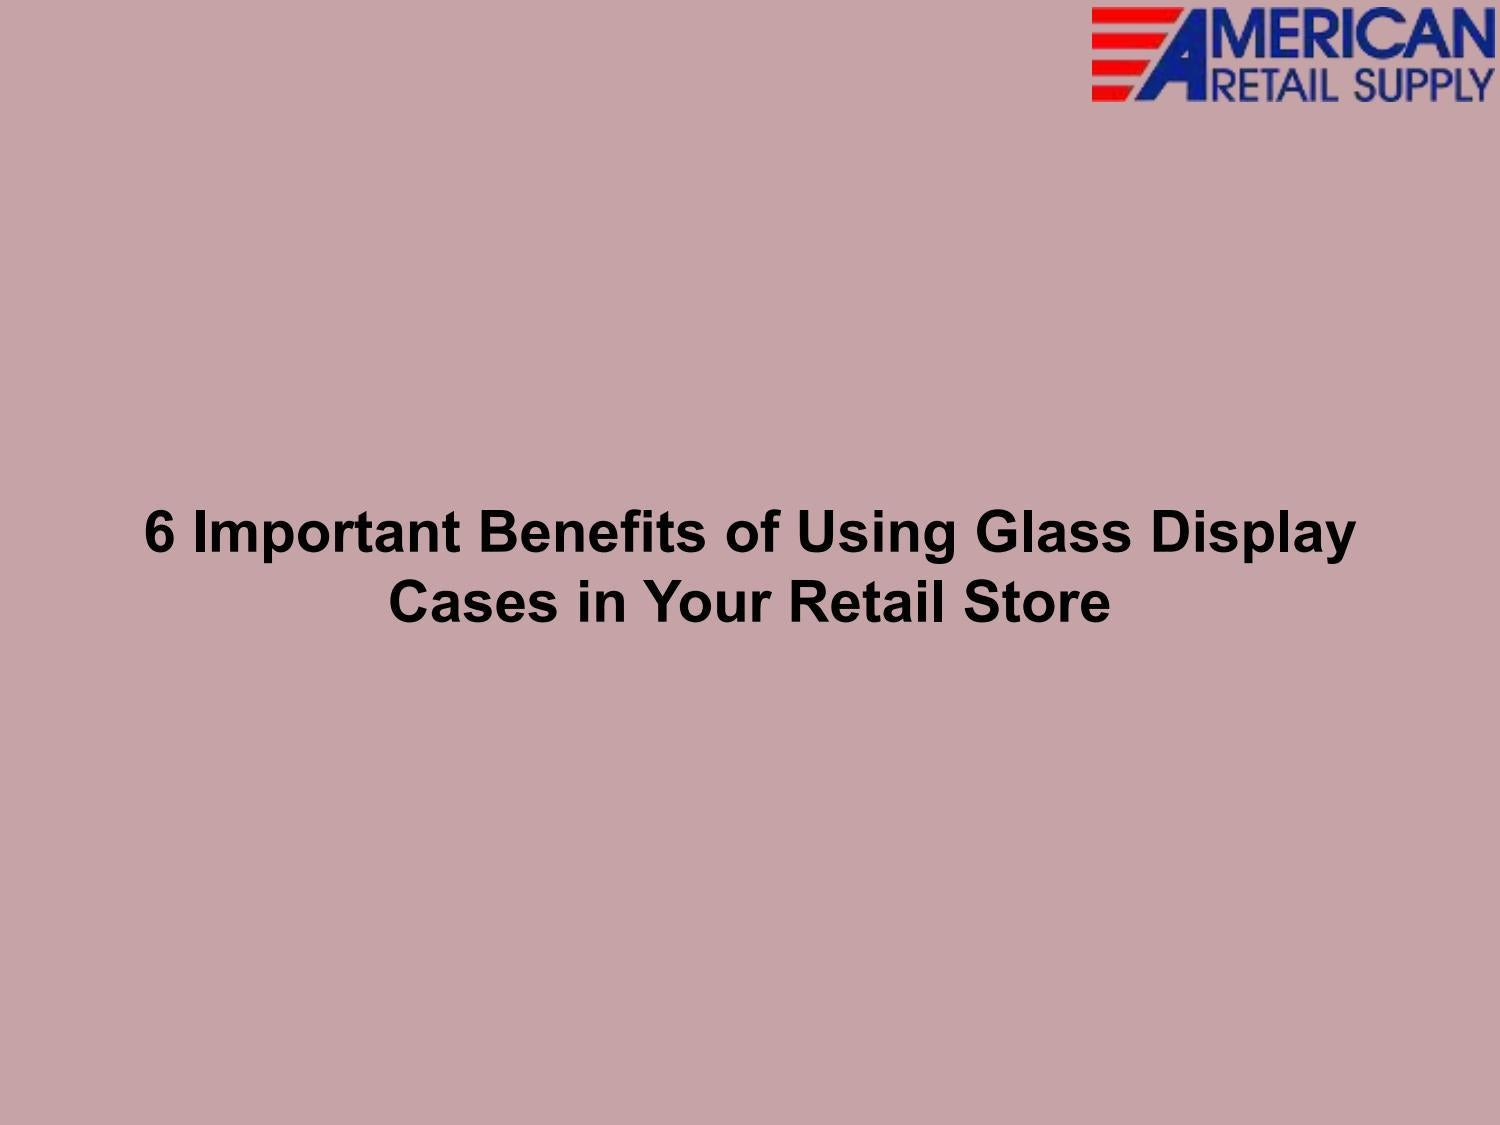 6 Important Benefits of Using Glass Display Cases in Your Retail Store